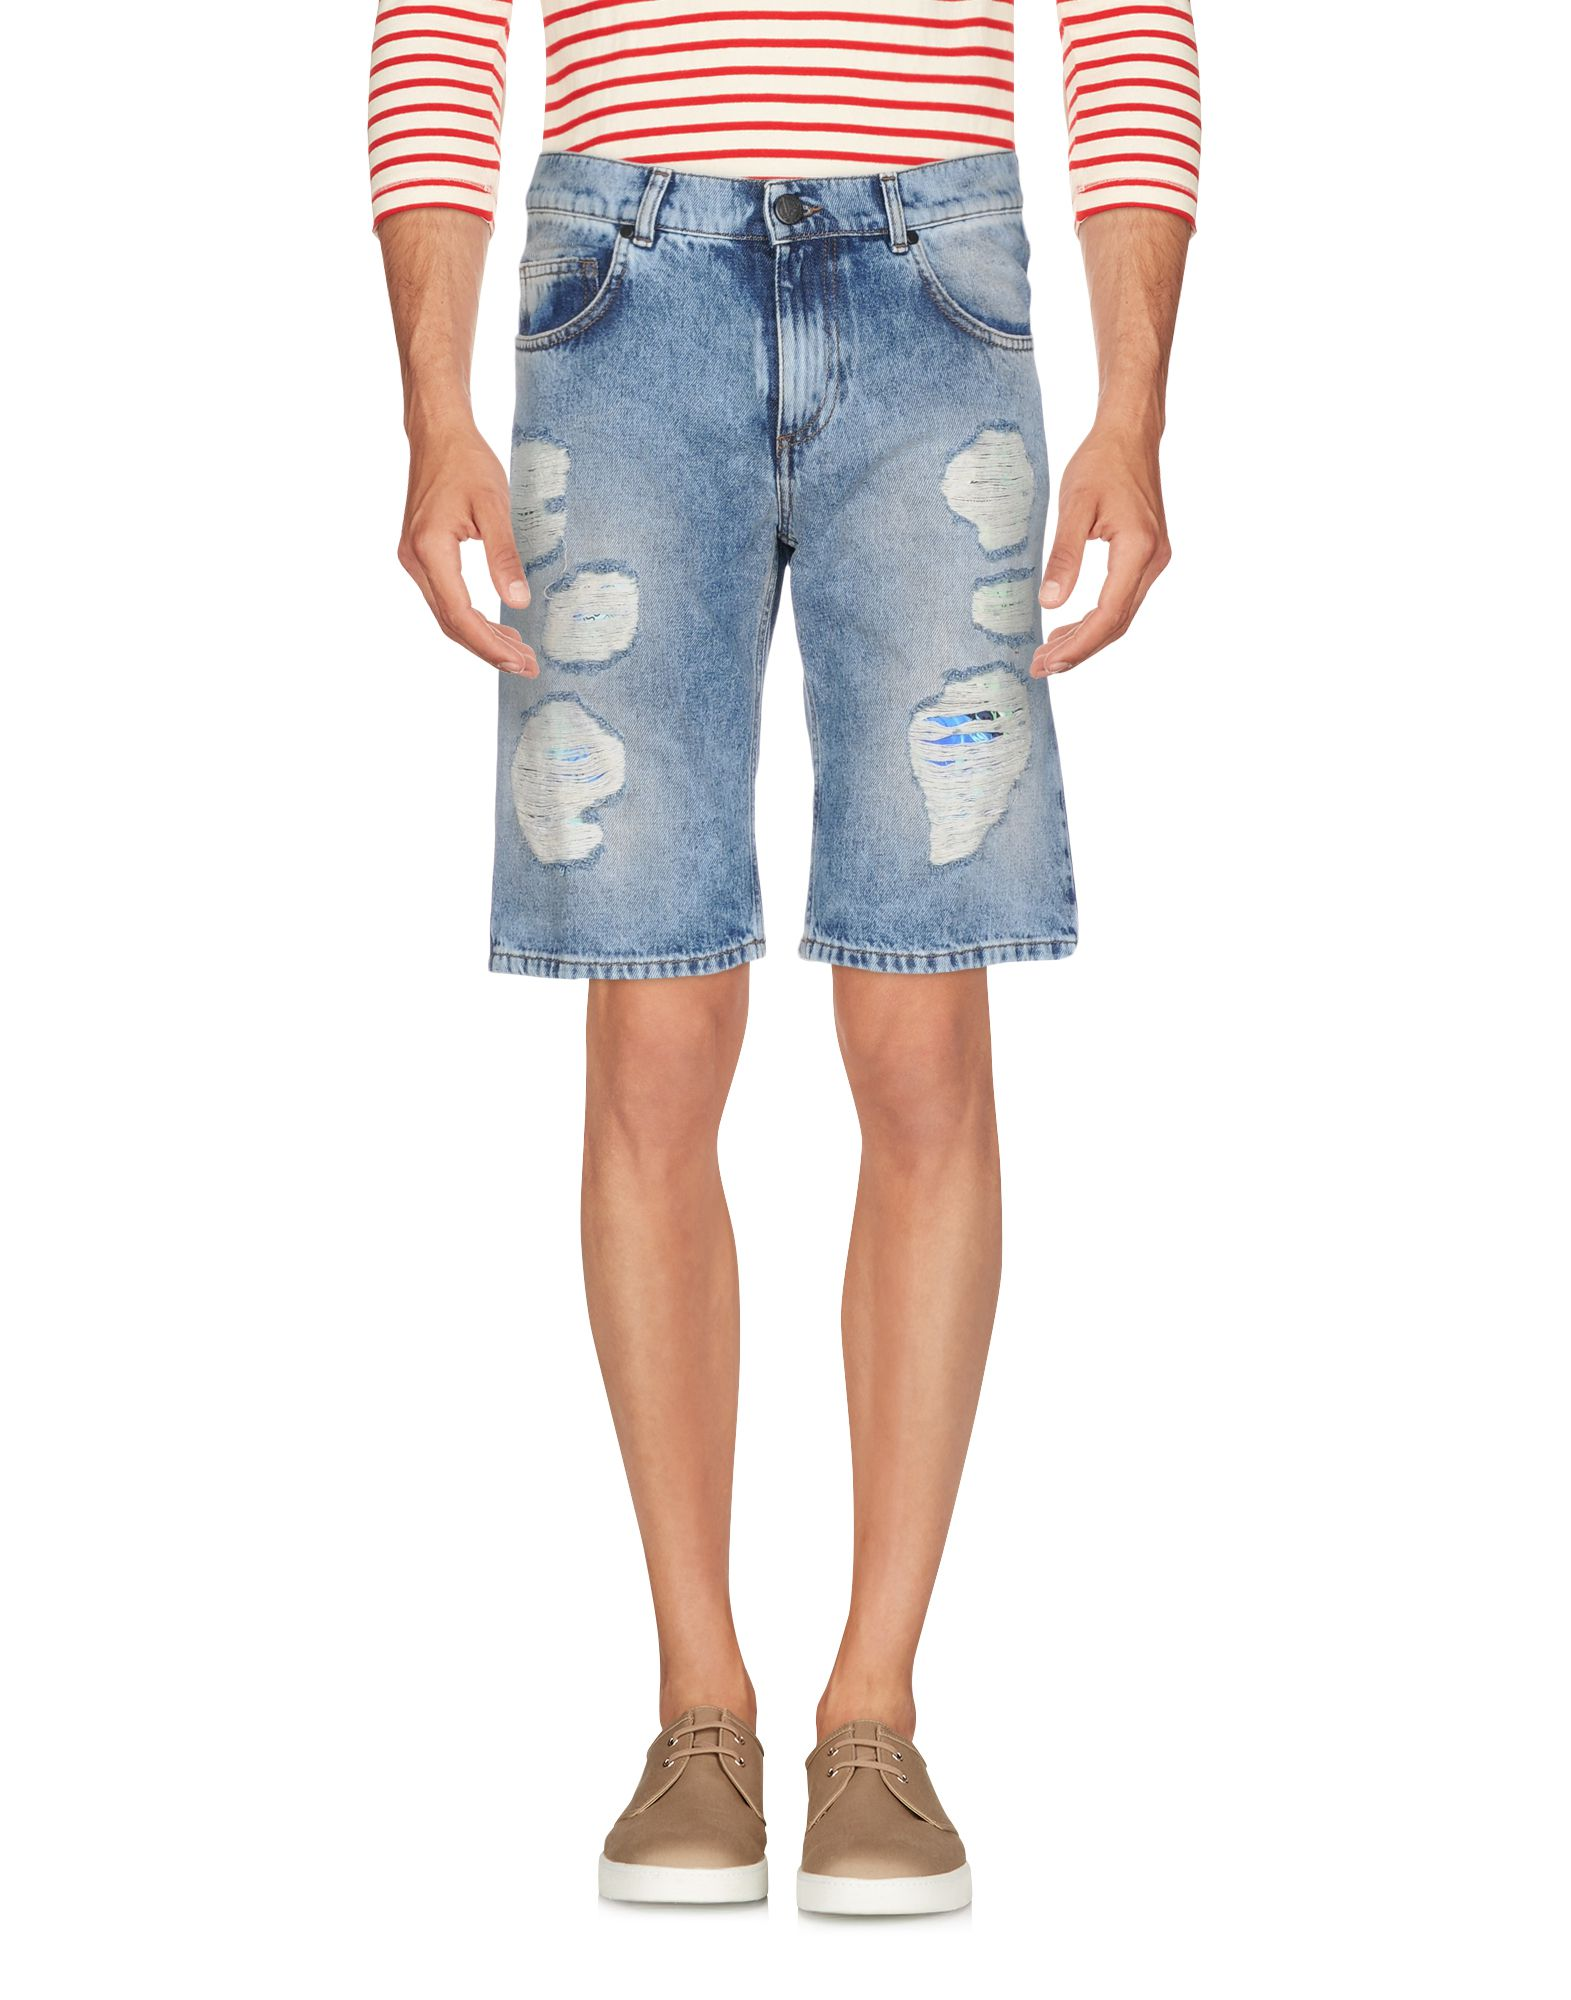 Shorts Jeans Versace Jeans Uomo - Acquista online su